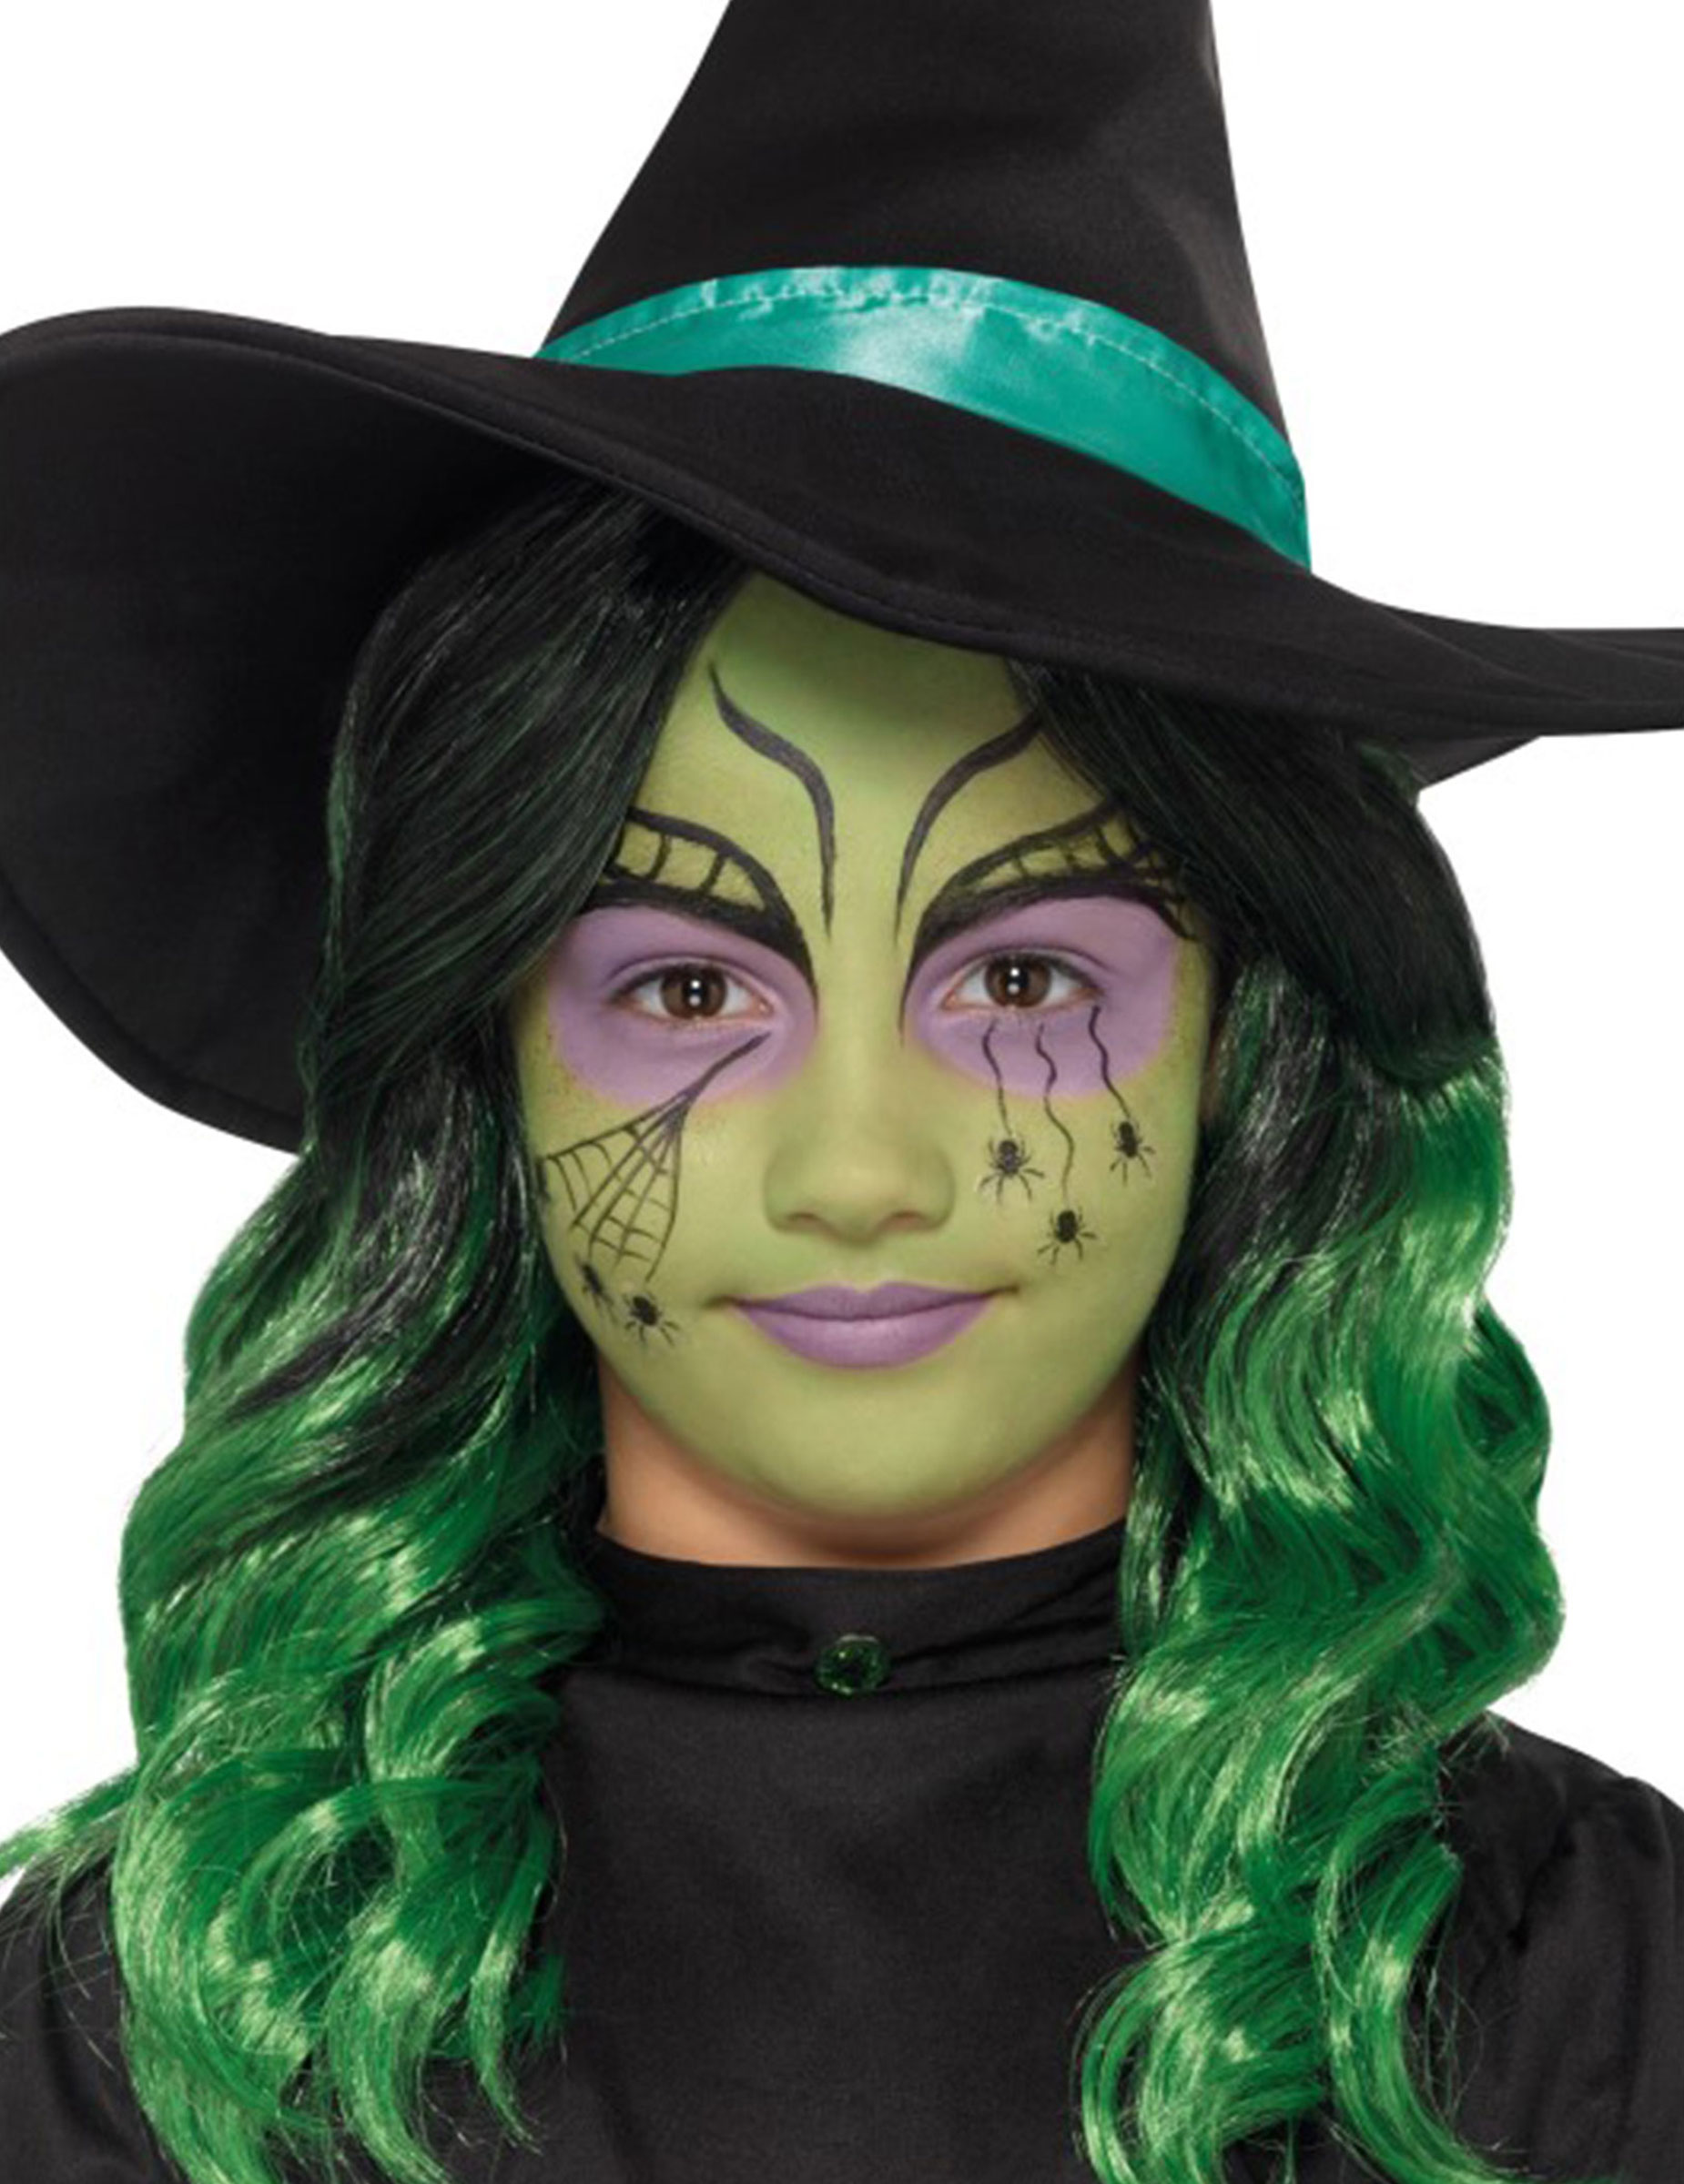 Schminken Kinder Halloween Hexen Schminkset Für Kinder Halloween Make Up Bunt